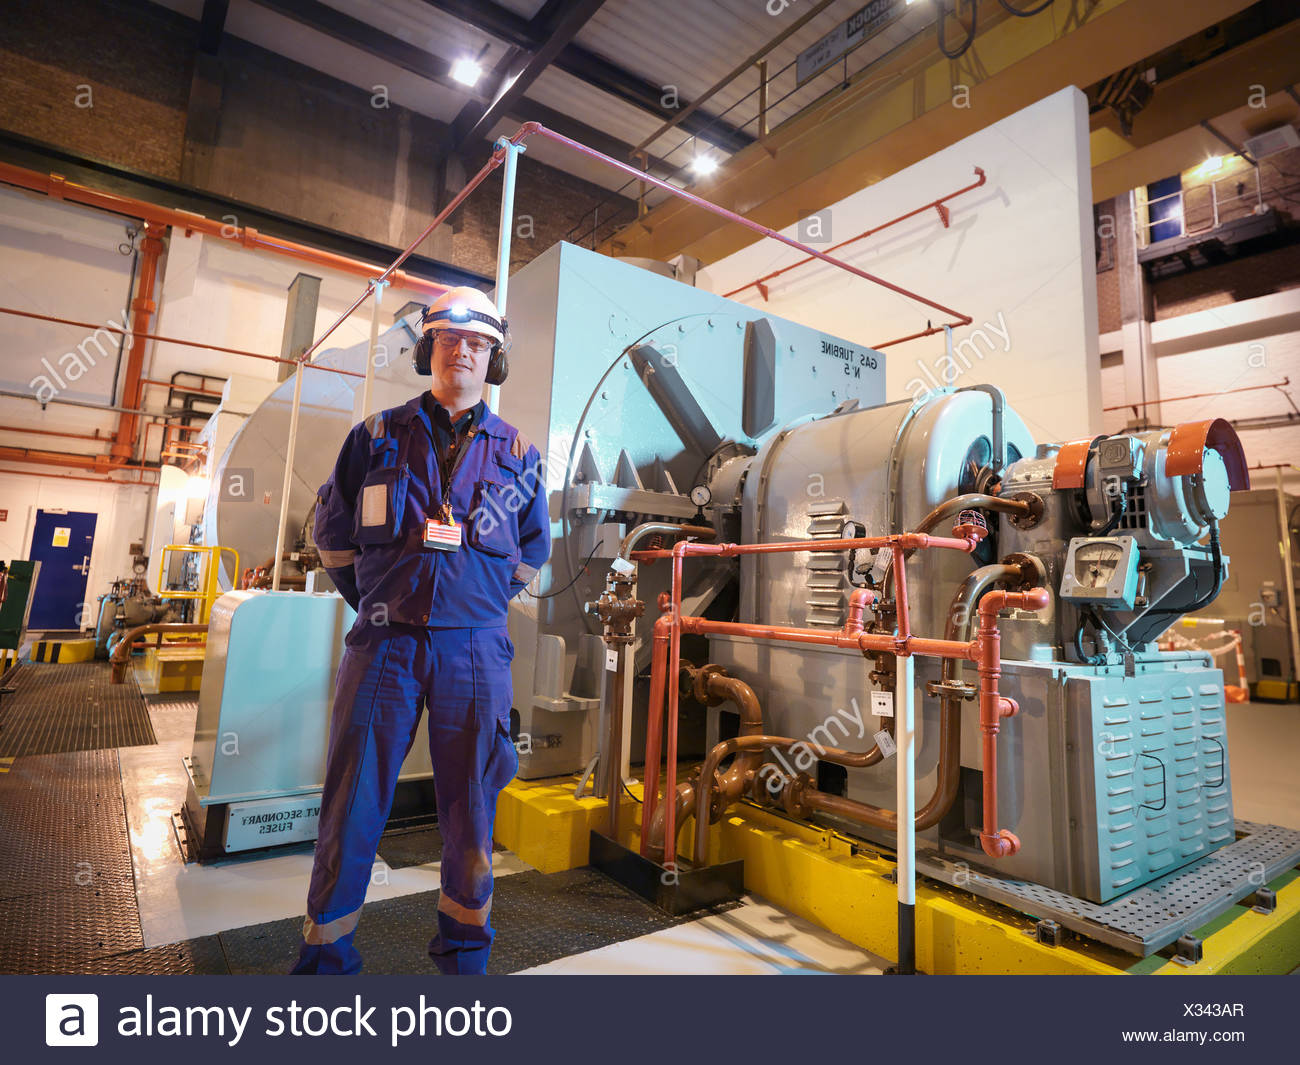 Portrait of engineer in generator room of power station - Stock Image